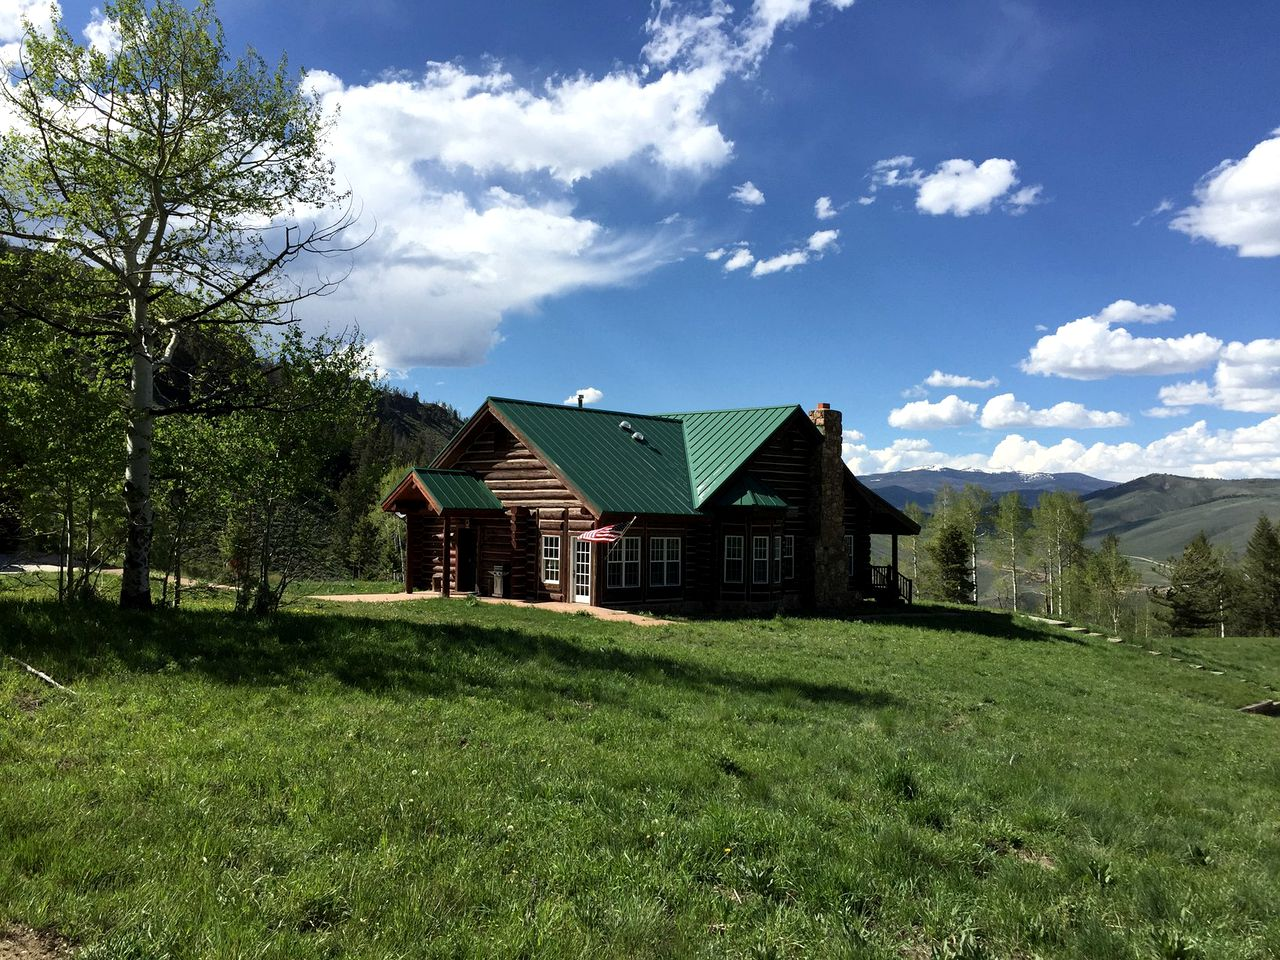 Log Cabins (Granby, Colorado, United States)